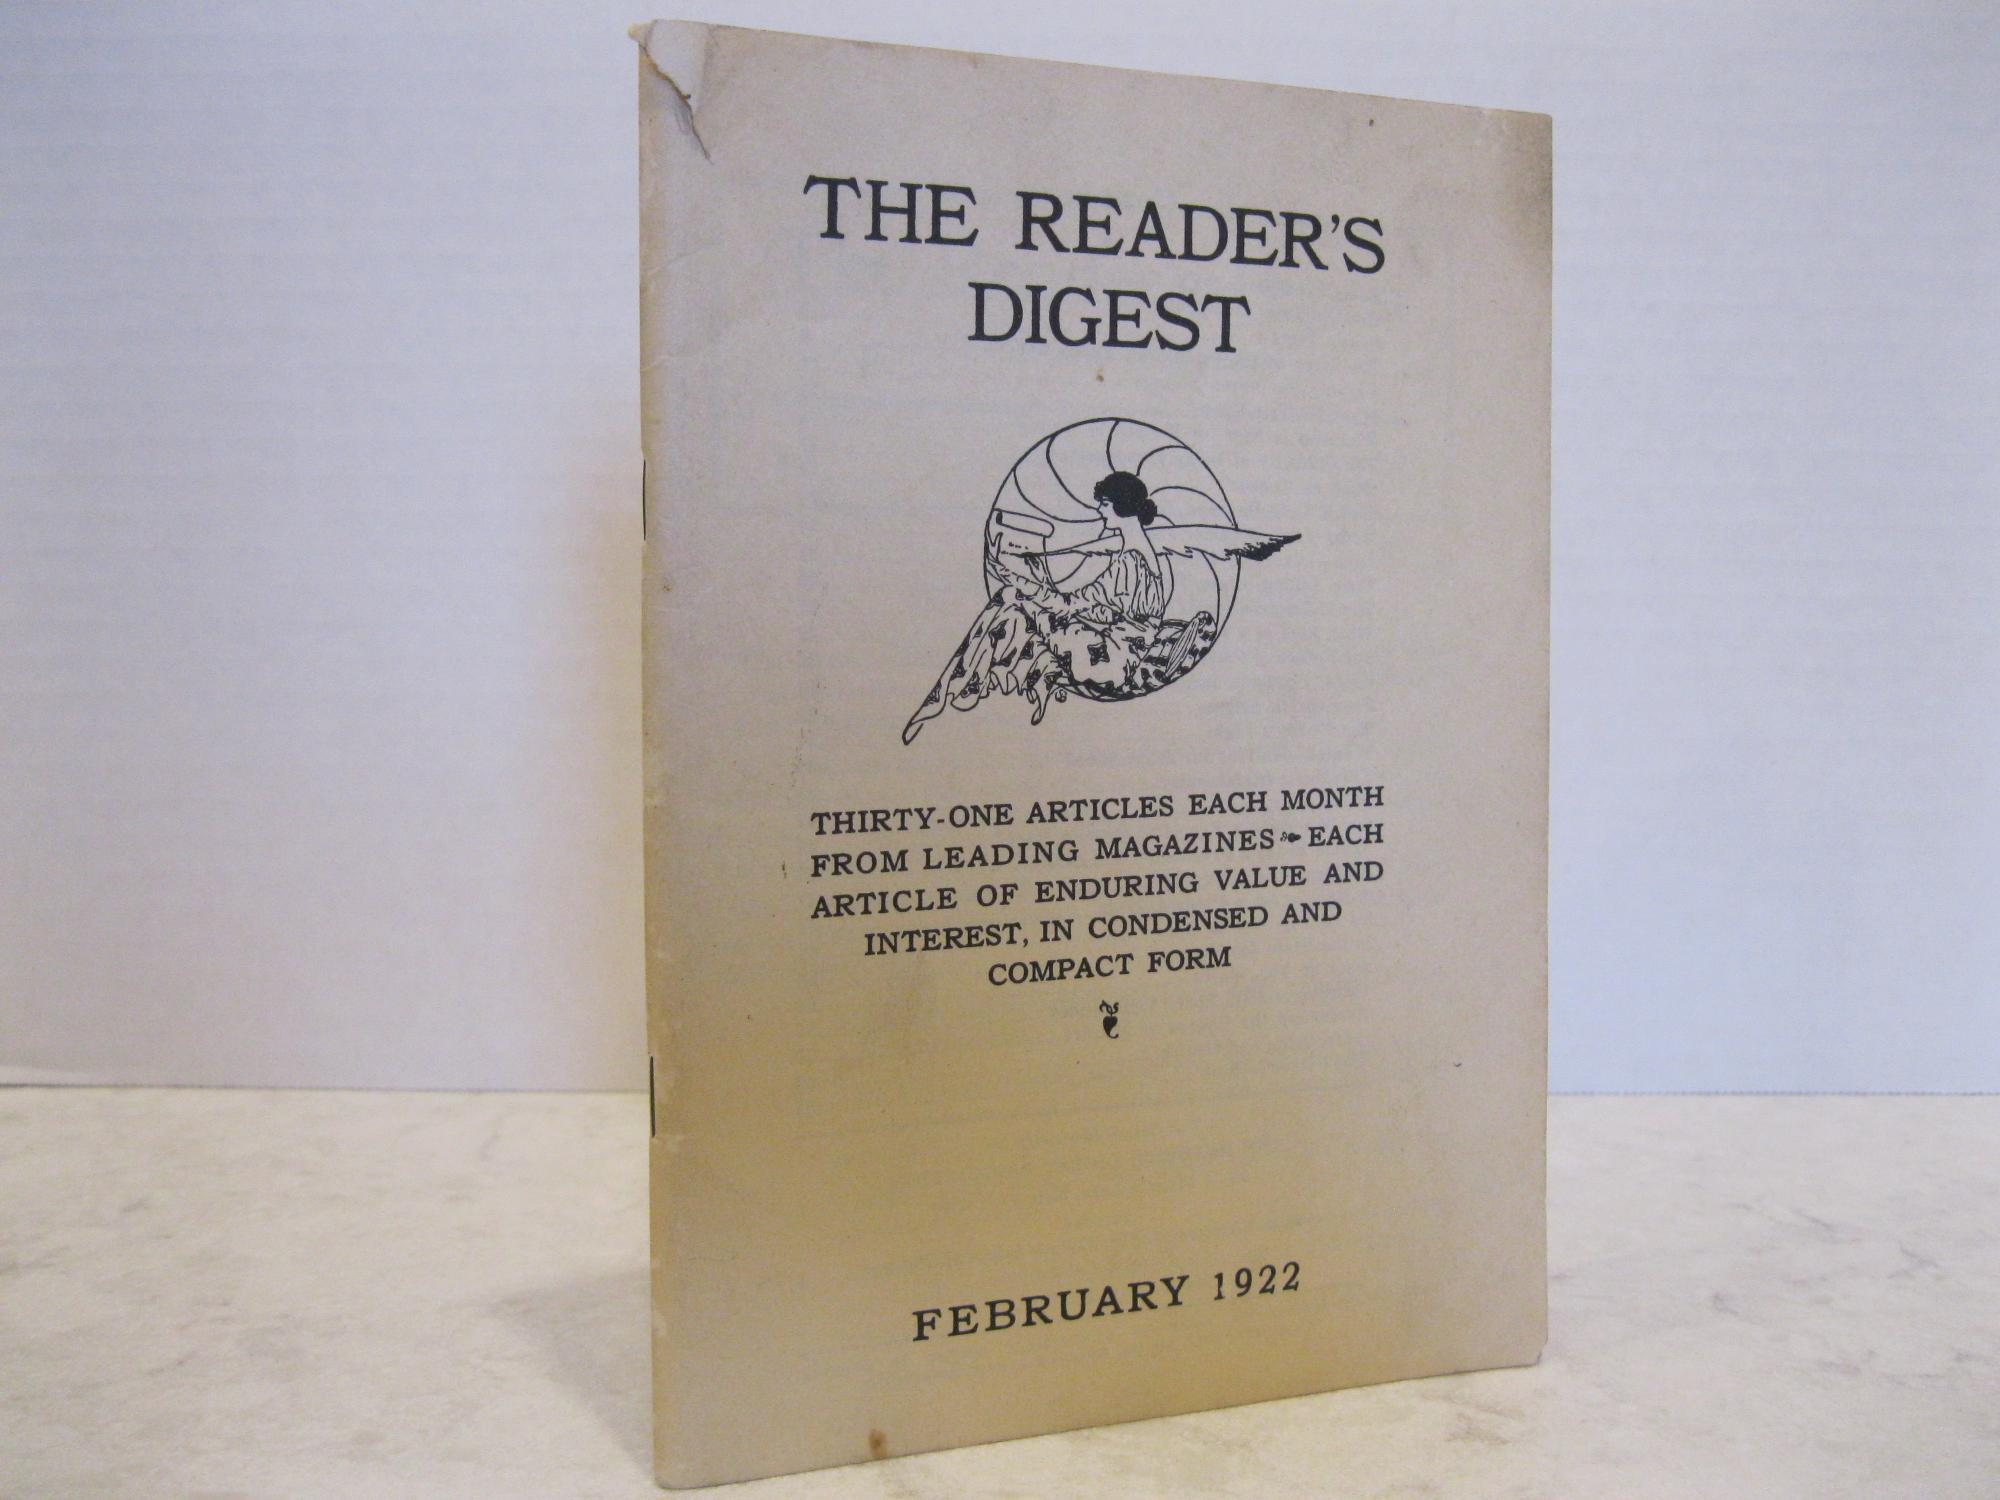 THE_READERS_DIGEST_VOLUME_1_NUMBER_1_ACHESON_LILA_BELL_Preface_Very_Good_Softcover